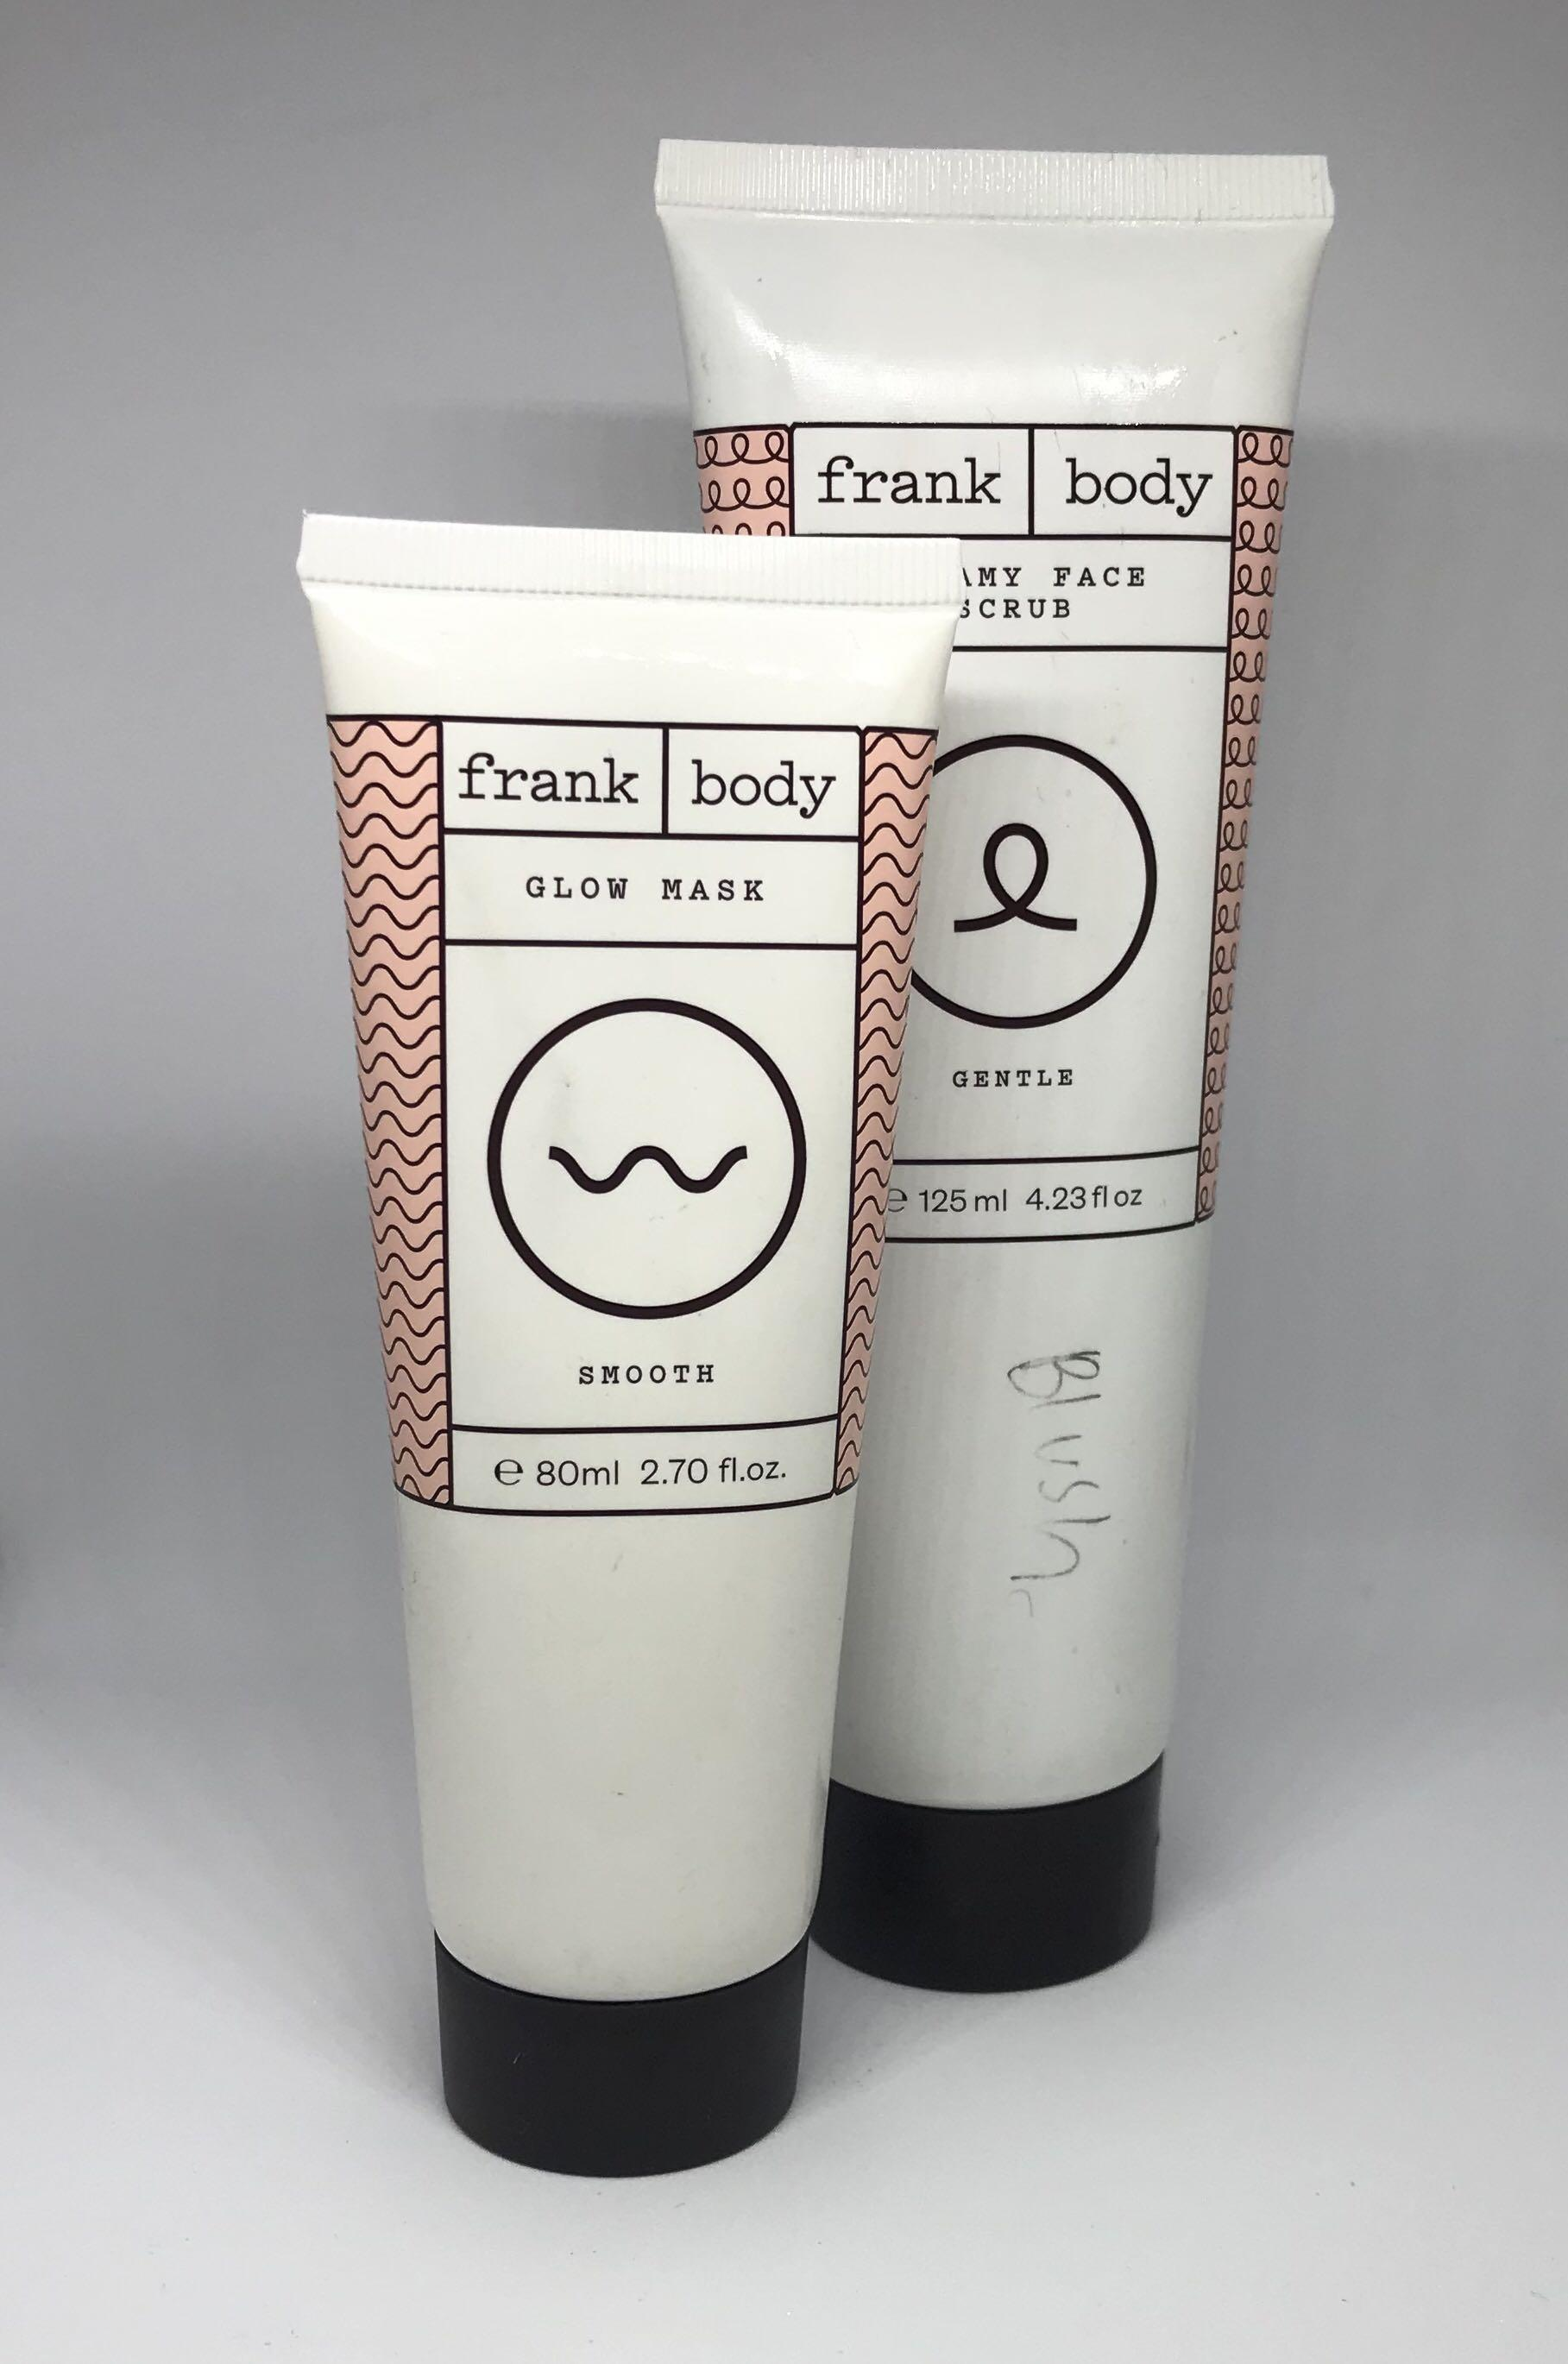 Frank Body mask and cleasner